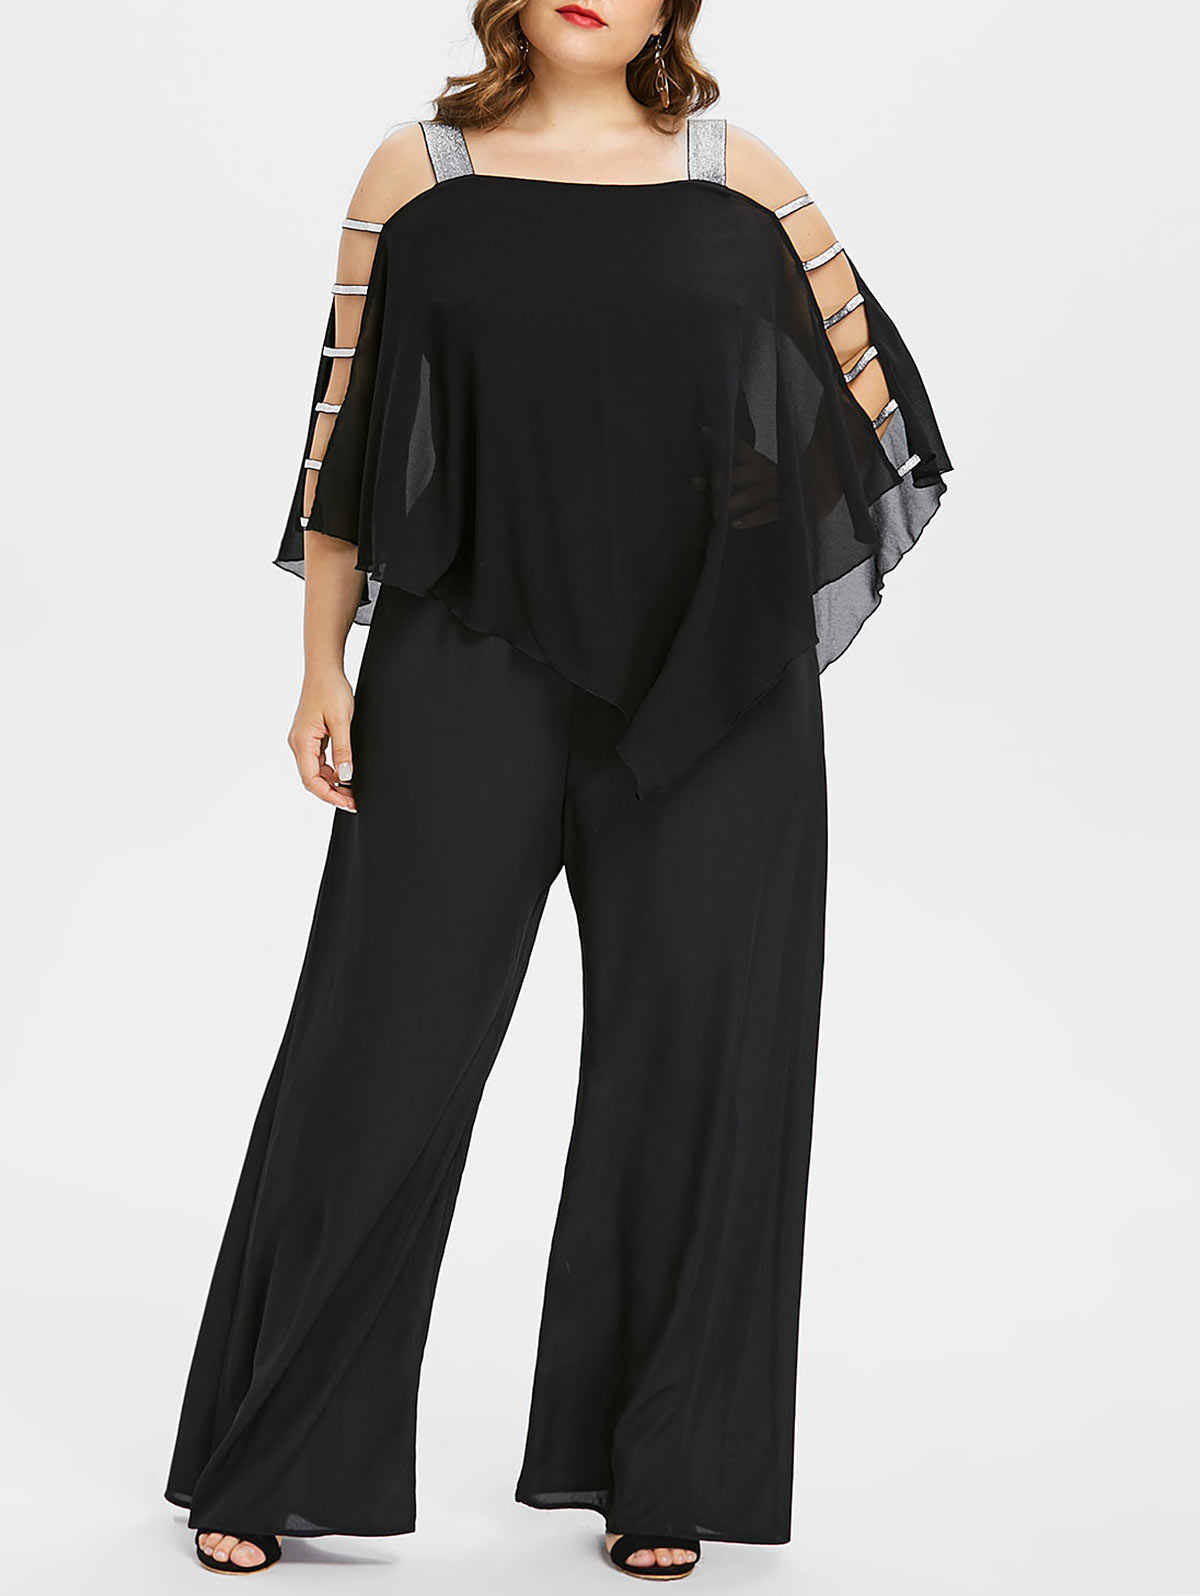 ... Wipalo Plus Size 5XL Ladder Cut Out Overlay Jumpsuit Women Square Neck  Asymmetrical Loose Fitting Fashion ... 7a0b466dd52a